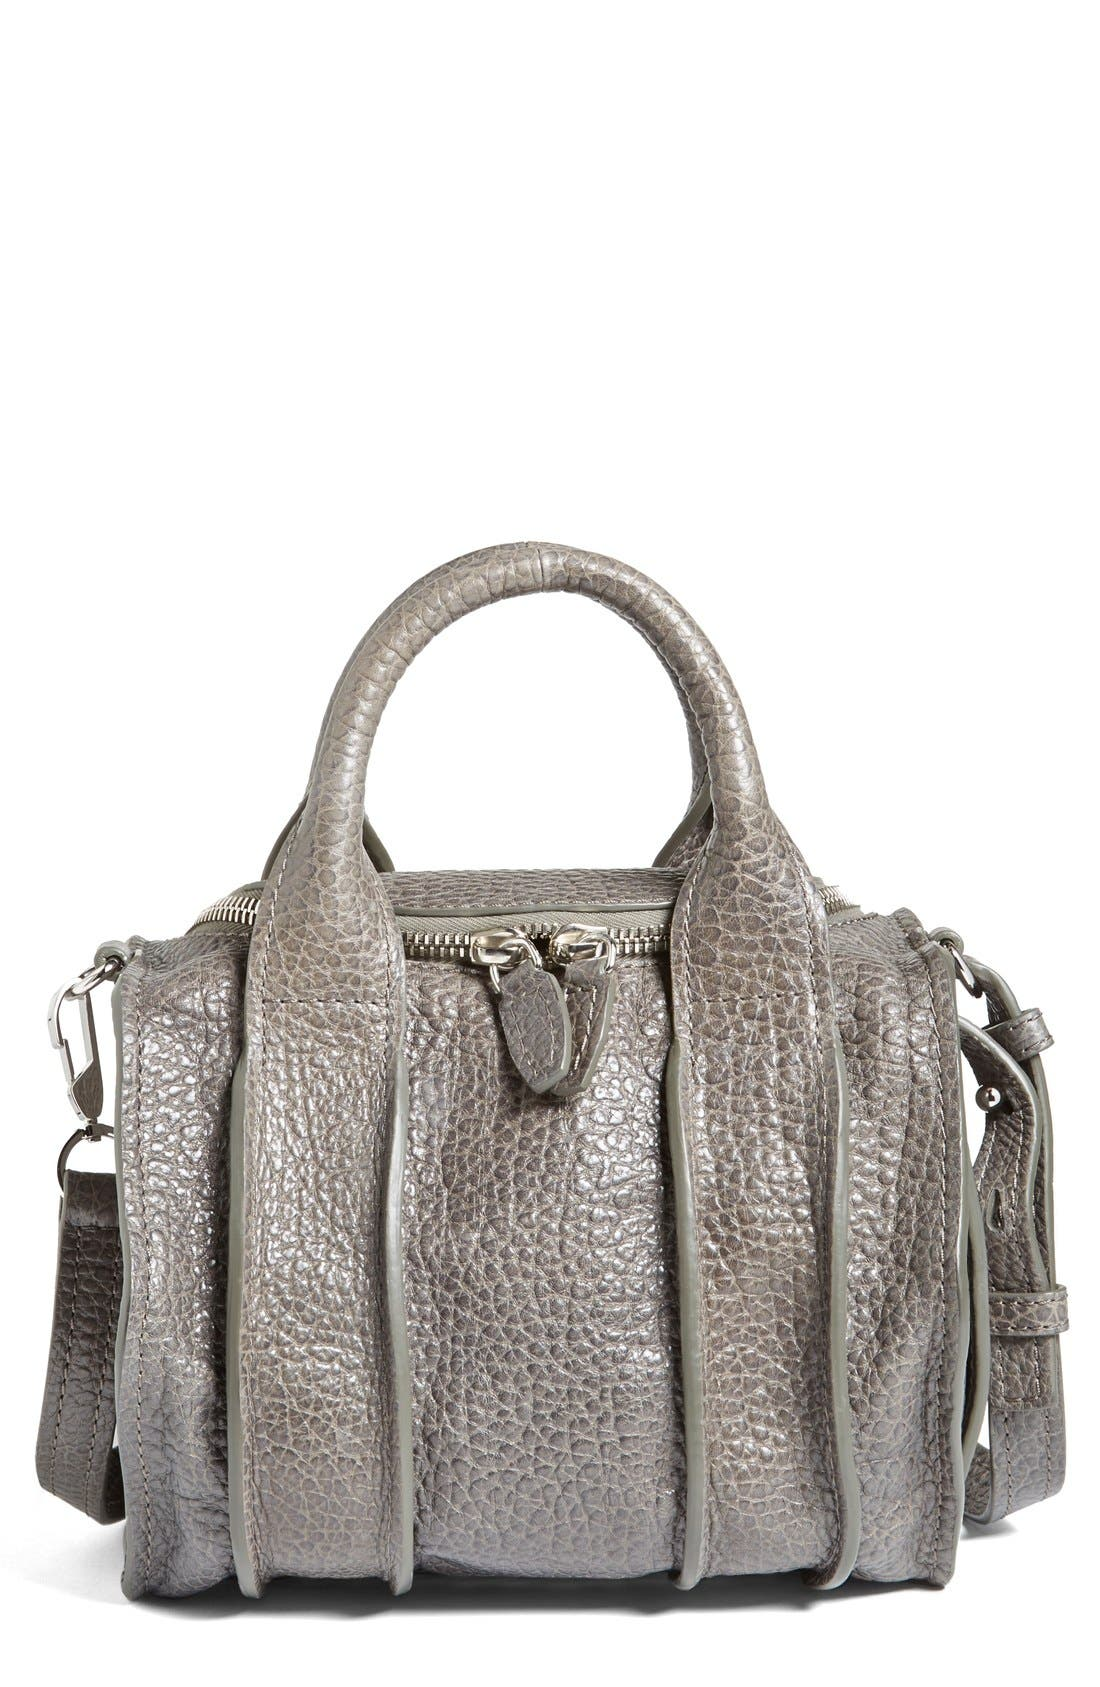 Alternate Image 1 Selected - Alexander Wang 'Rockie - Inside Out' Leather Crossbody Satchel